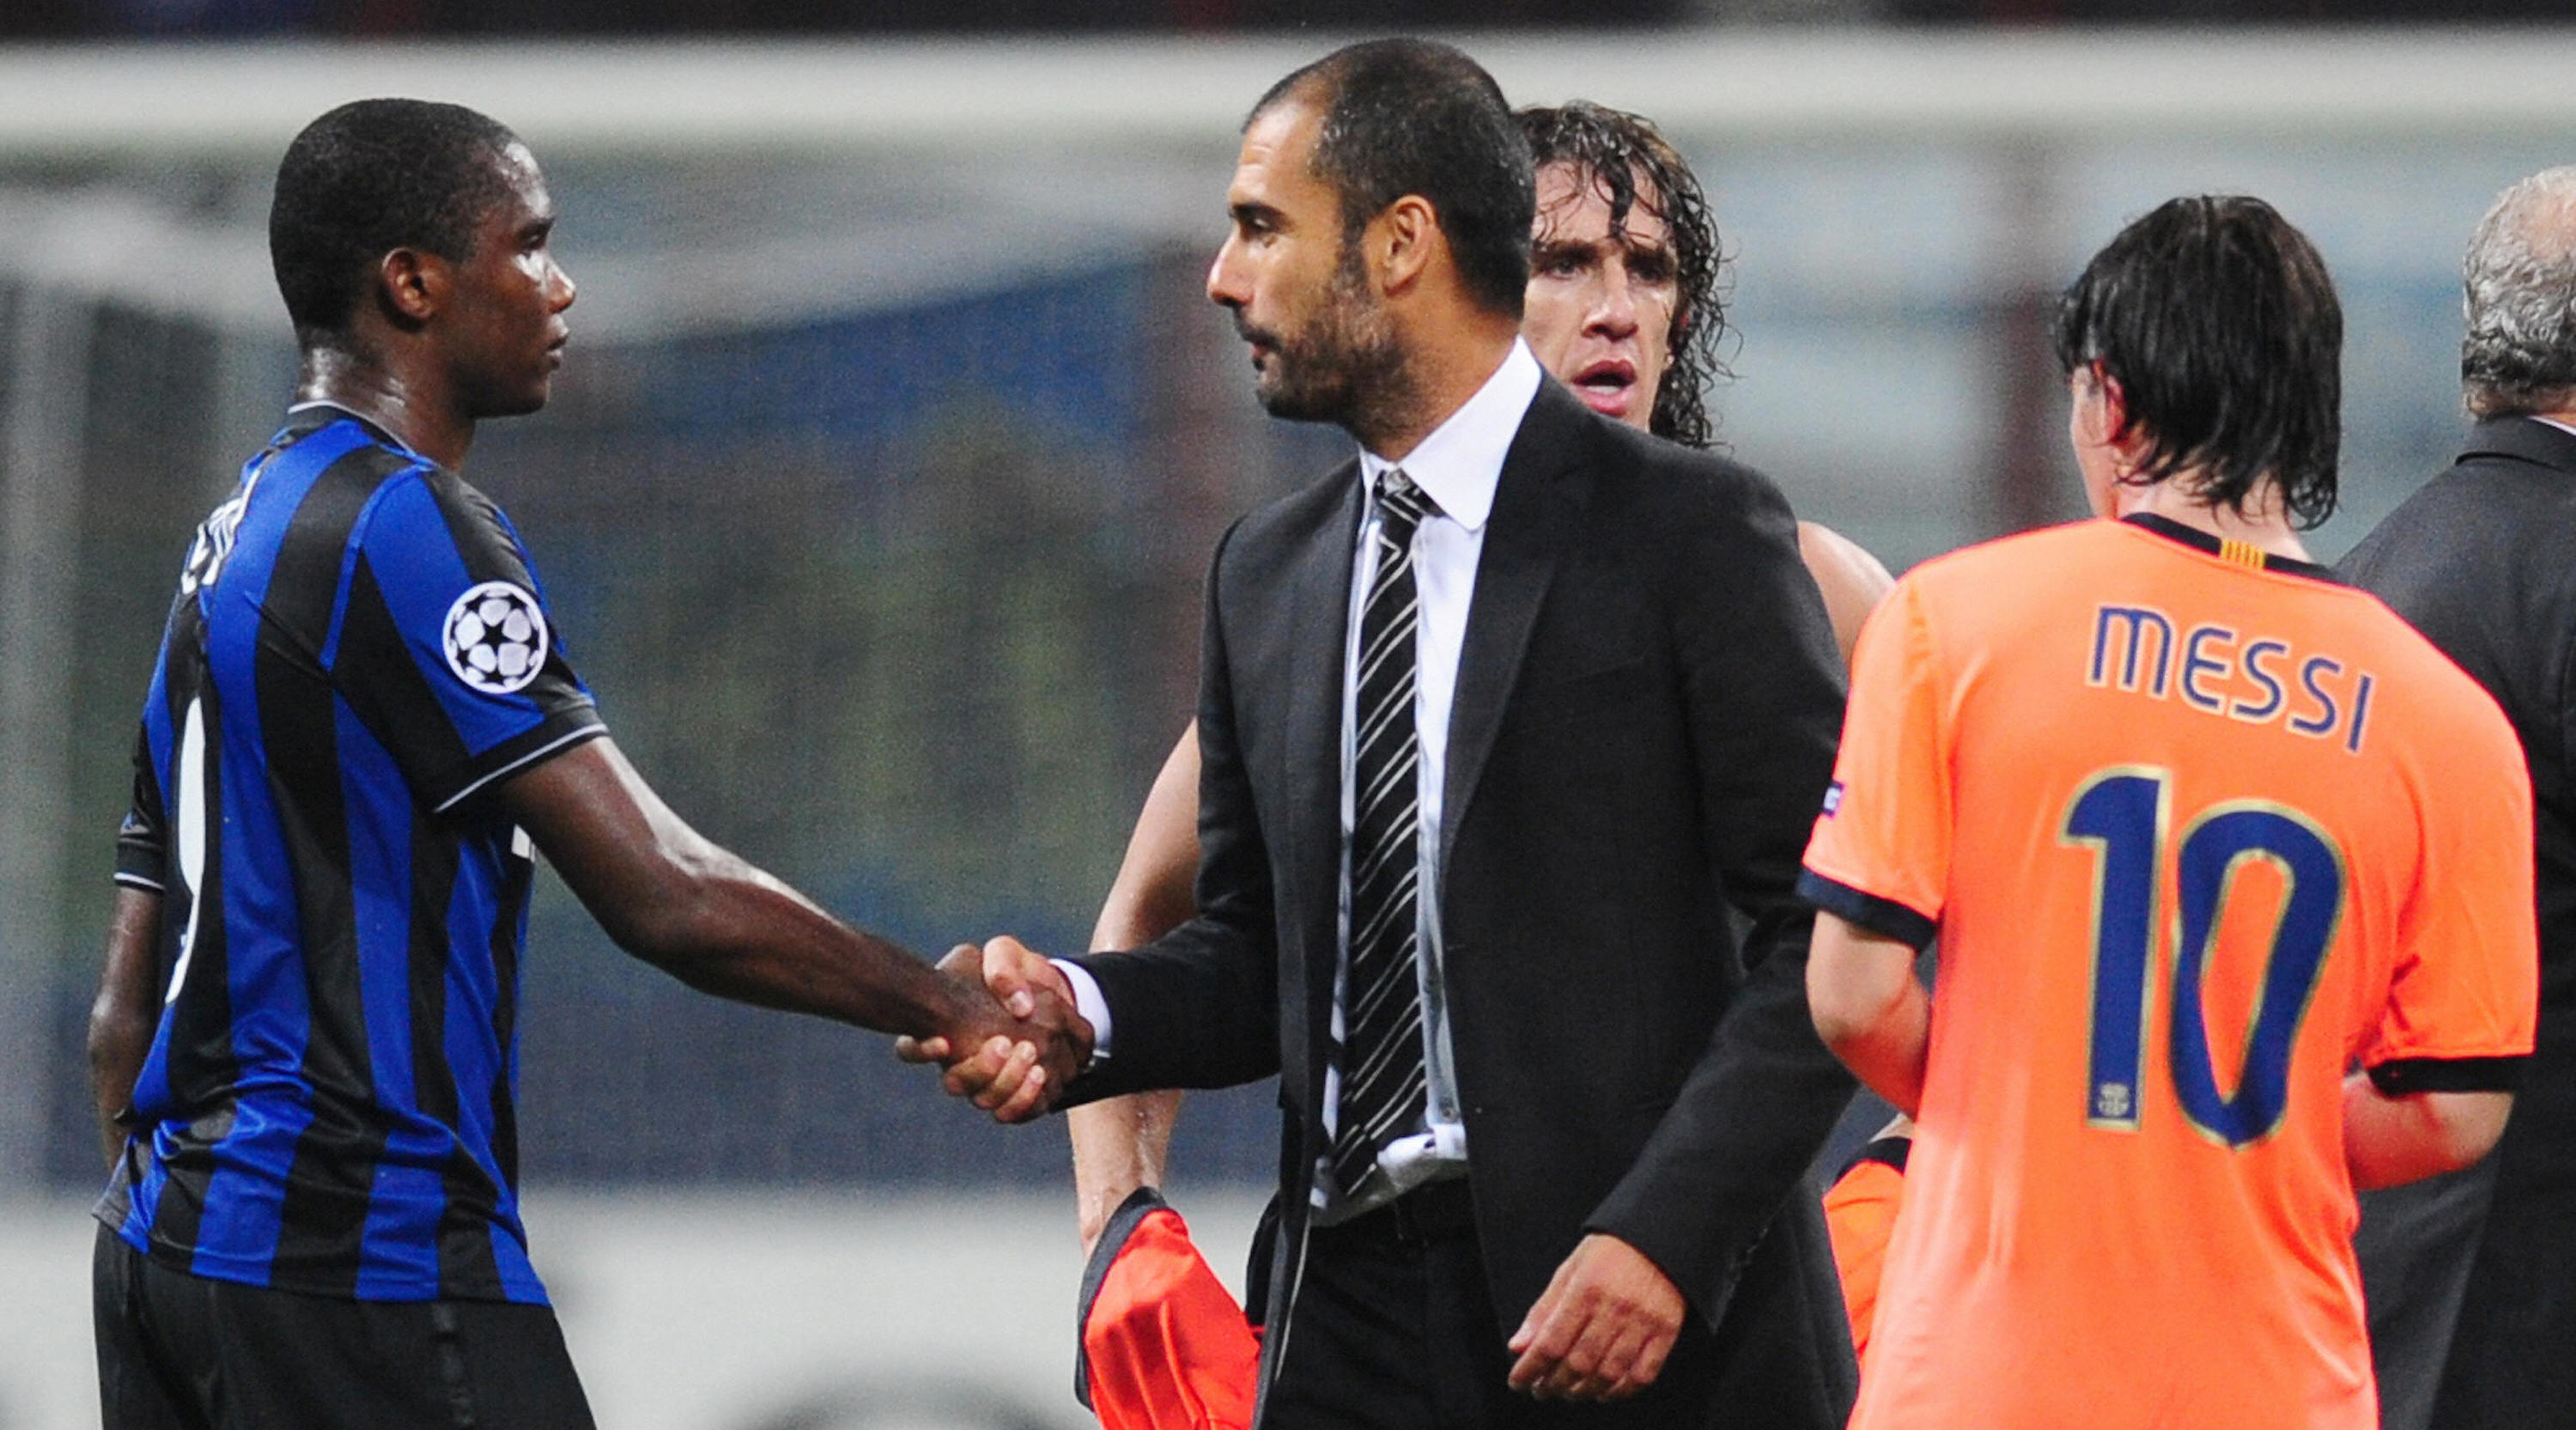 Barcelona's Josep Guardiola (C) shakes hands with Inter Milan's Cameroonian forward Samuel Eto'o next to Barcelona's Argentinian forward Lionel Messi (R) and Barcelona's captain Carles Puyol (2D-R) after their UEFA Champions League football match at San Siro Stadium in Milan on September 16, 2009. The match ended in a 0-0 draw. AFP PHOTO / Christophe Simon (Photo credit should read CHRISTOPHE SIMON/AFP/Getty Images)